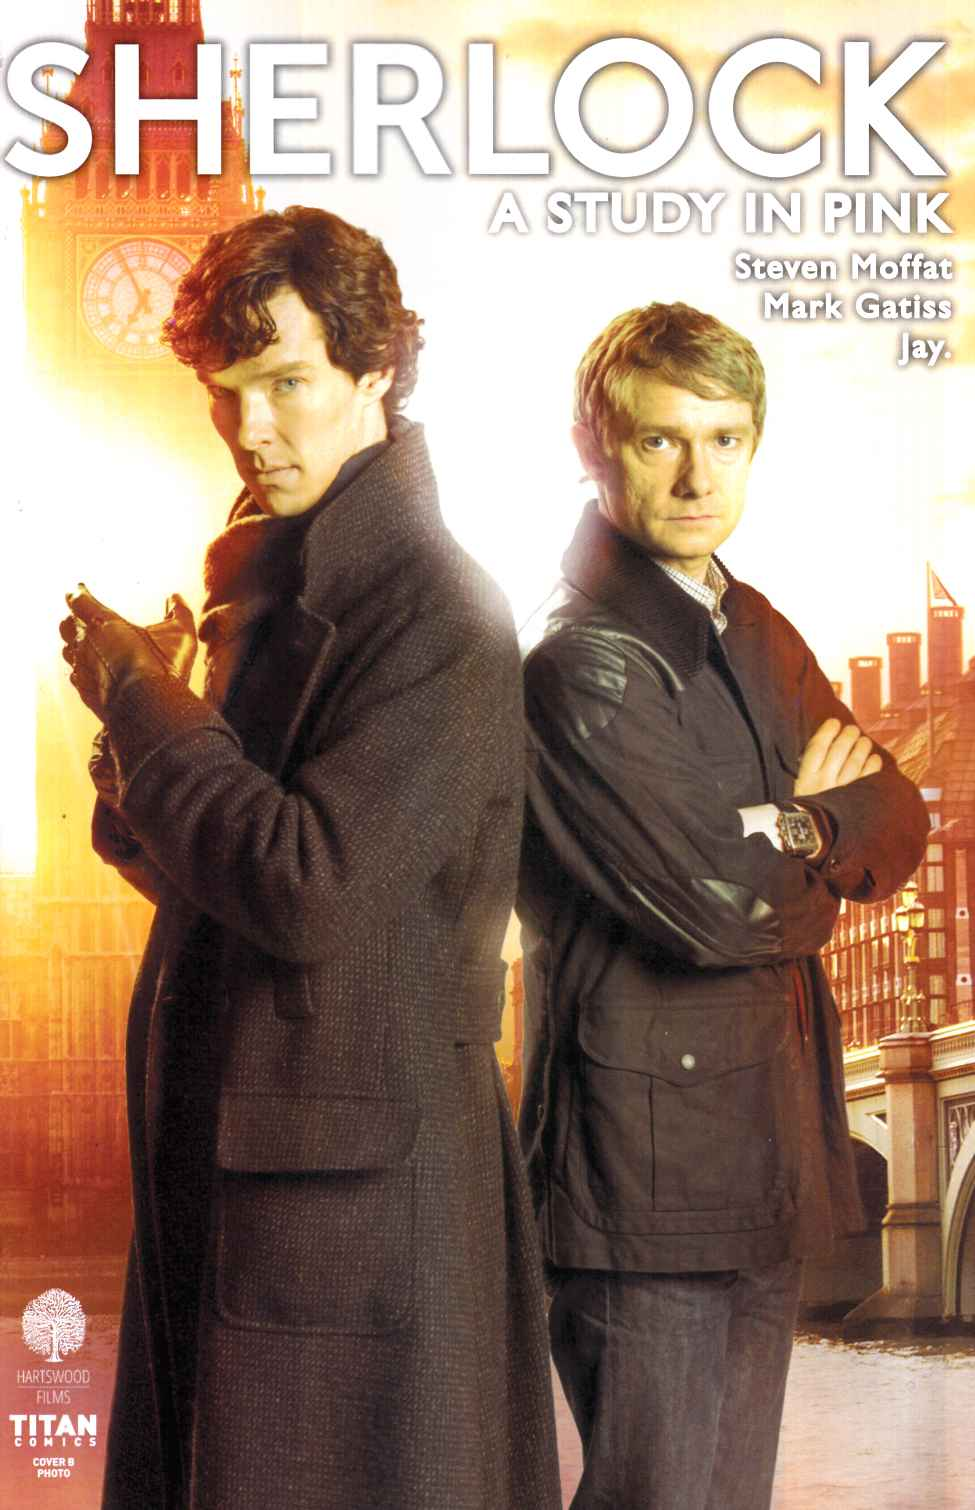 Sherlock Study In Pink #1 Cover B [Titan Comic]